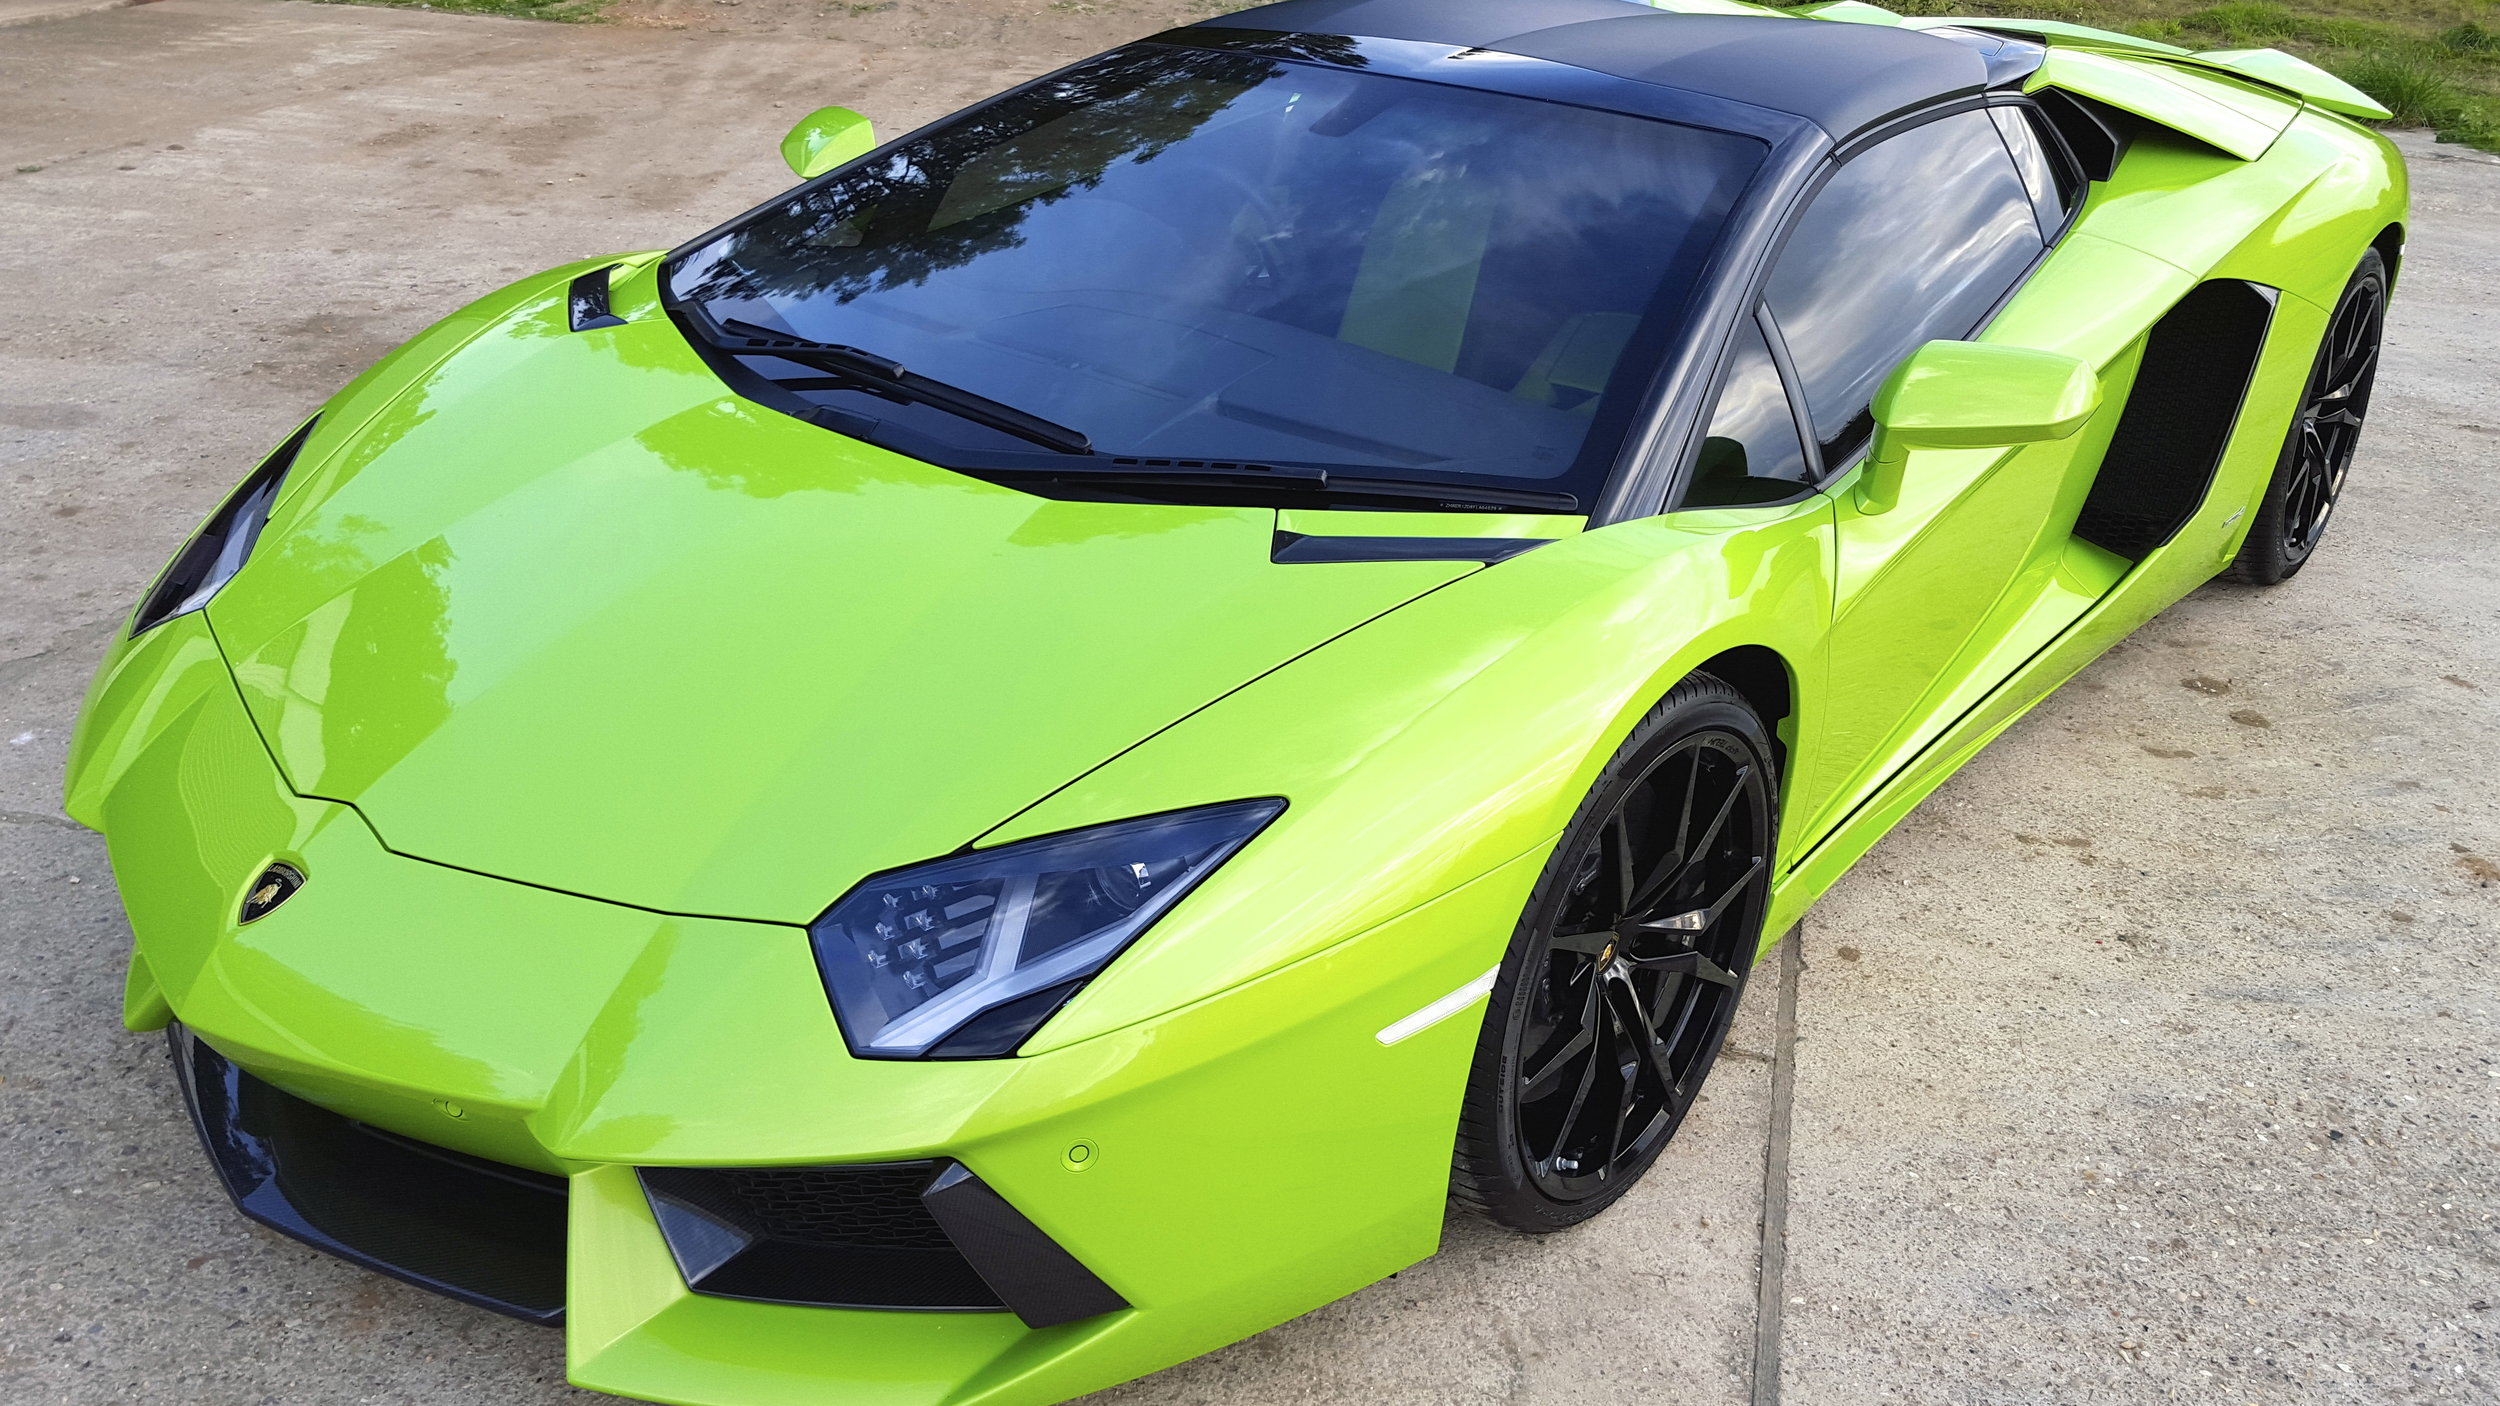 Copy of Lamborghini Aventador PPF Paint Protection Film